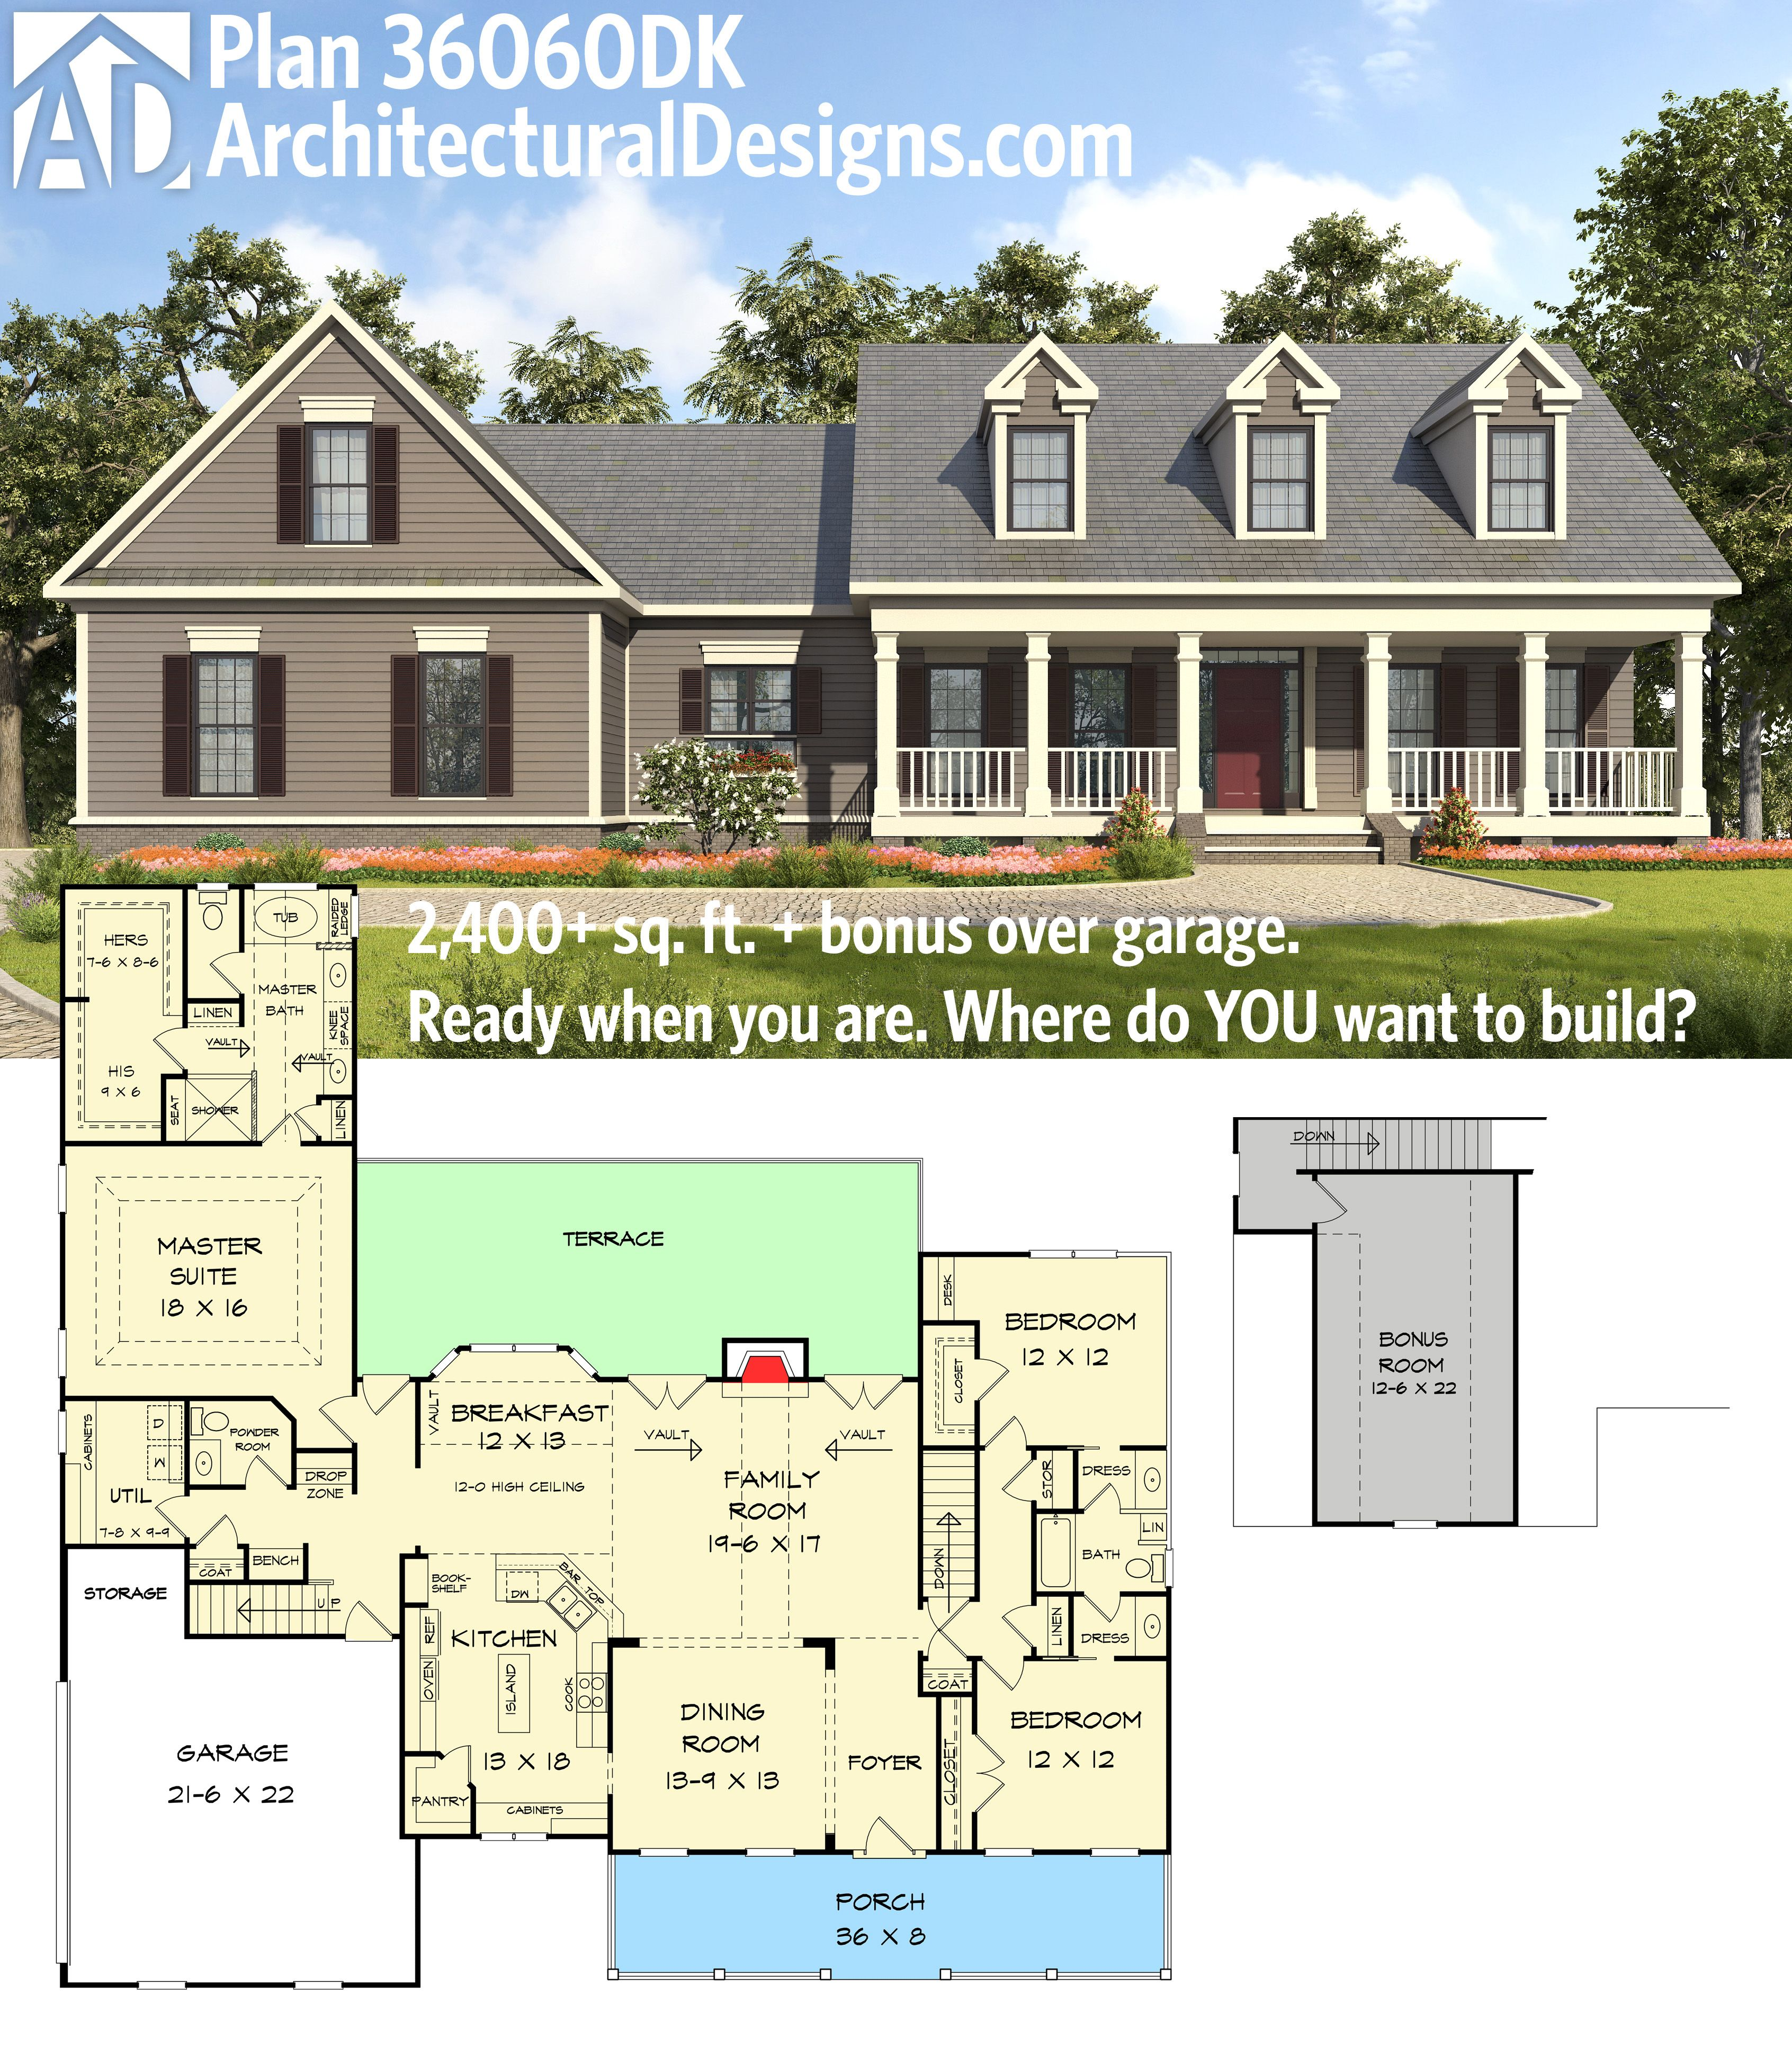 plan 500007vv craftsman house plan with main floor game room and architectural designs house plan 36060dk gives you 3 bed country living and a bonus room over